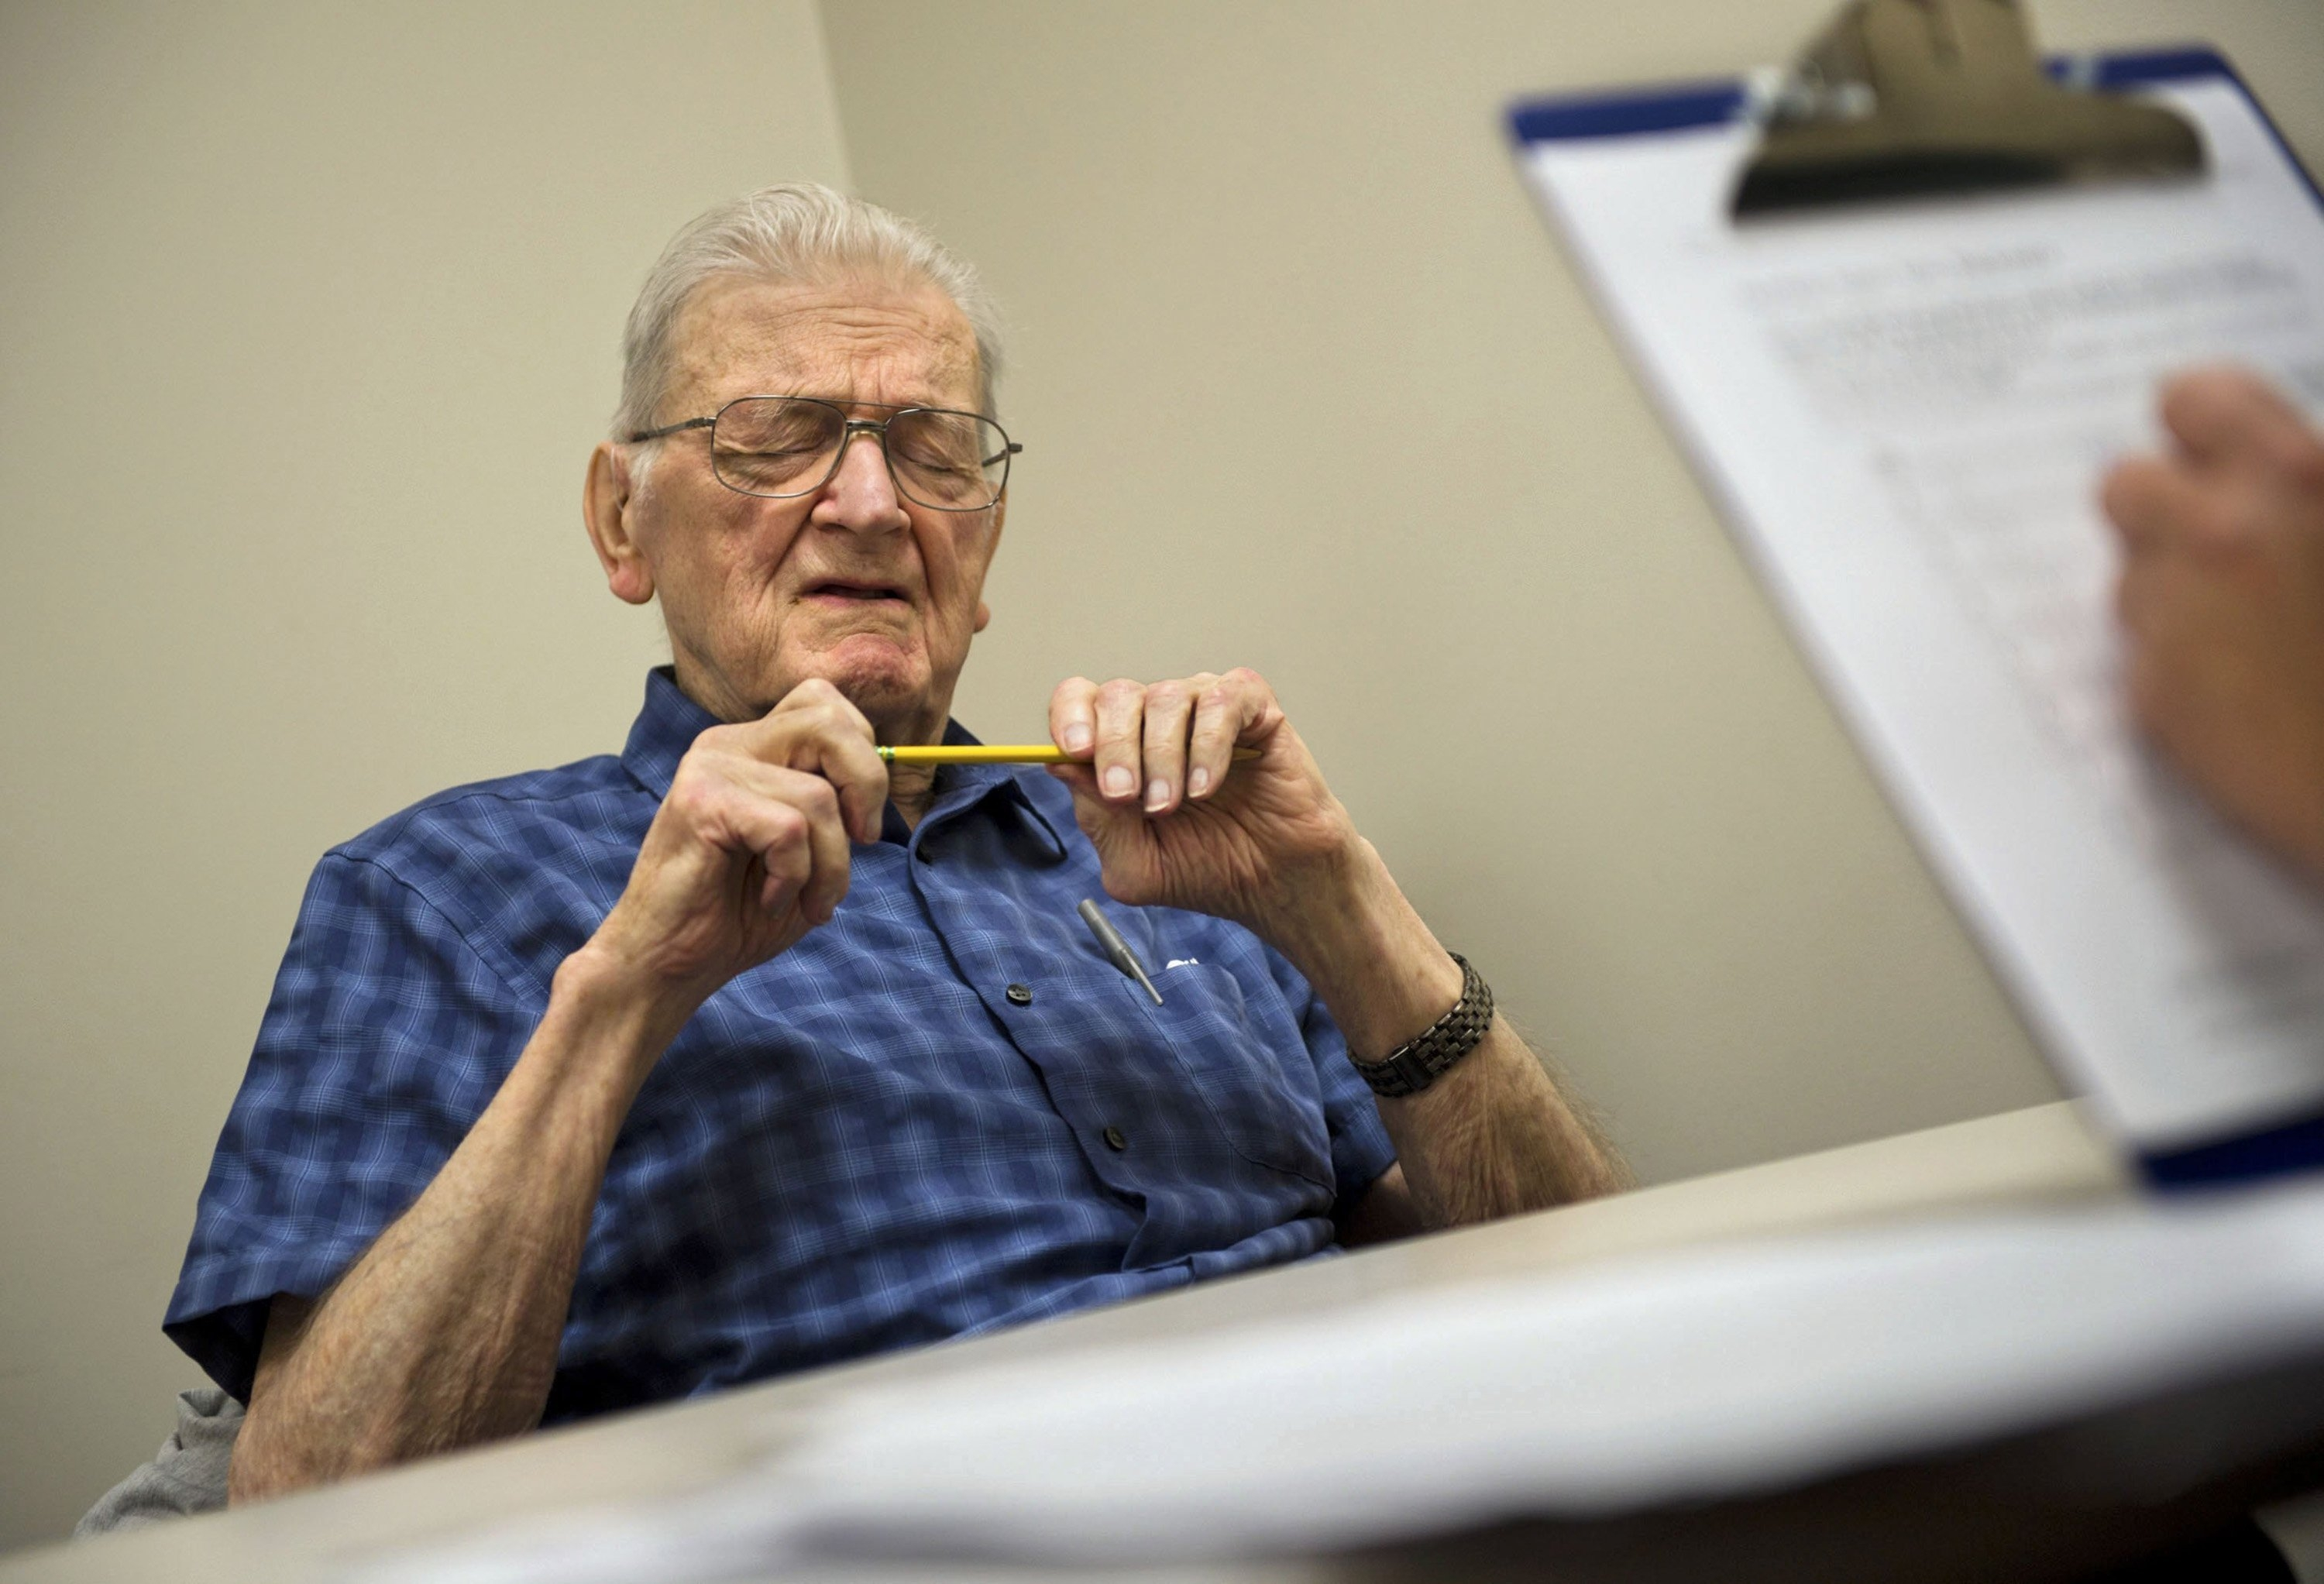 Joseph Giel, 90, closes his eyes to recall something while he takes a mini-mental status exam at the UC Davis Alzheimer's Disease Center in Sacramento, Calif. Past testing has shown Giel to be in good cognitive shape.